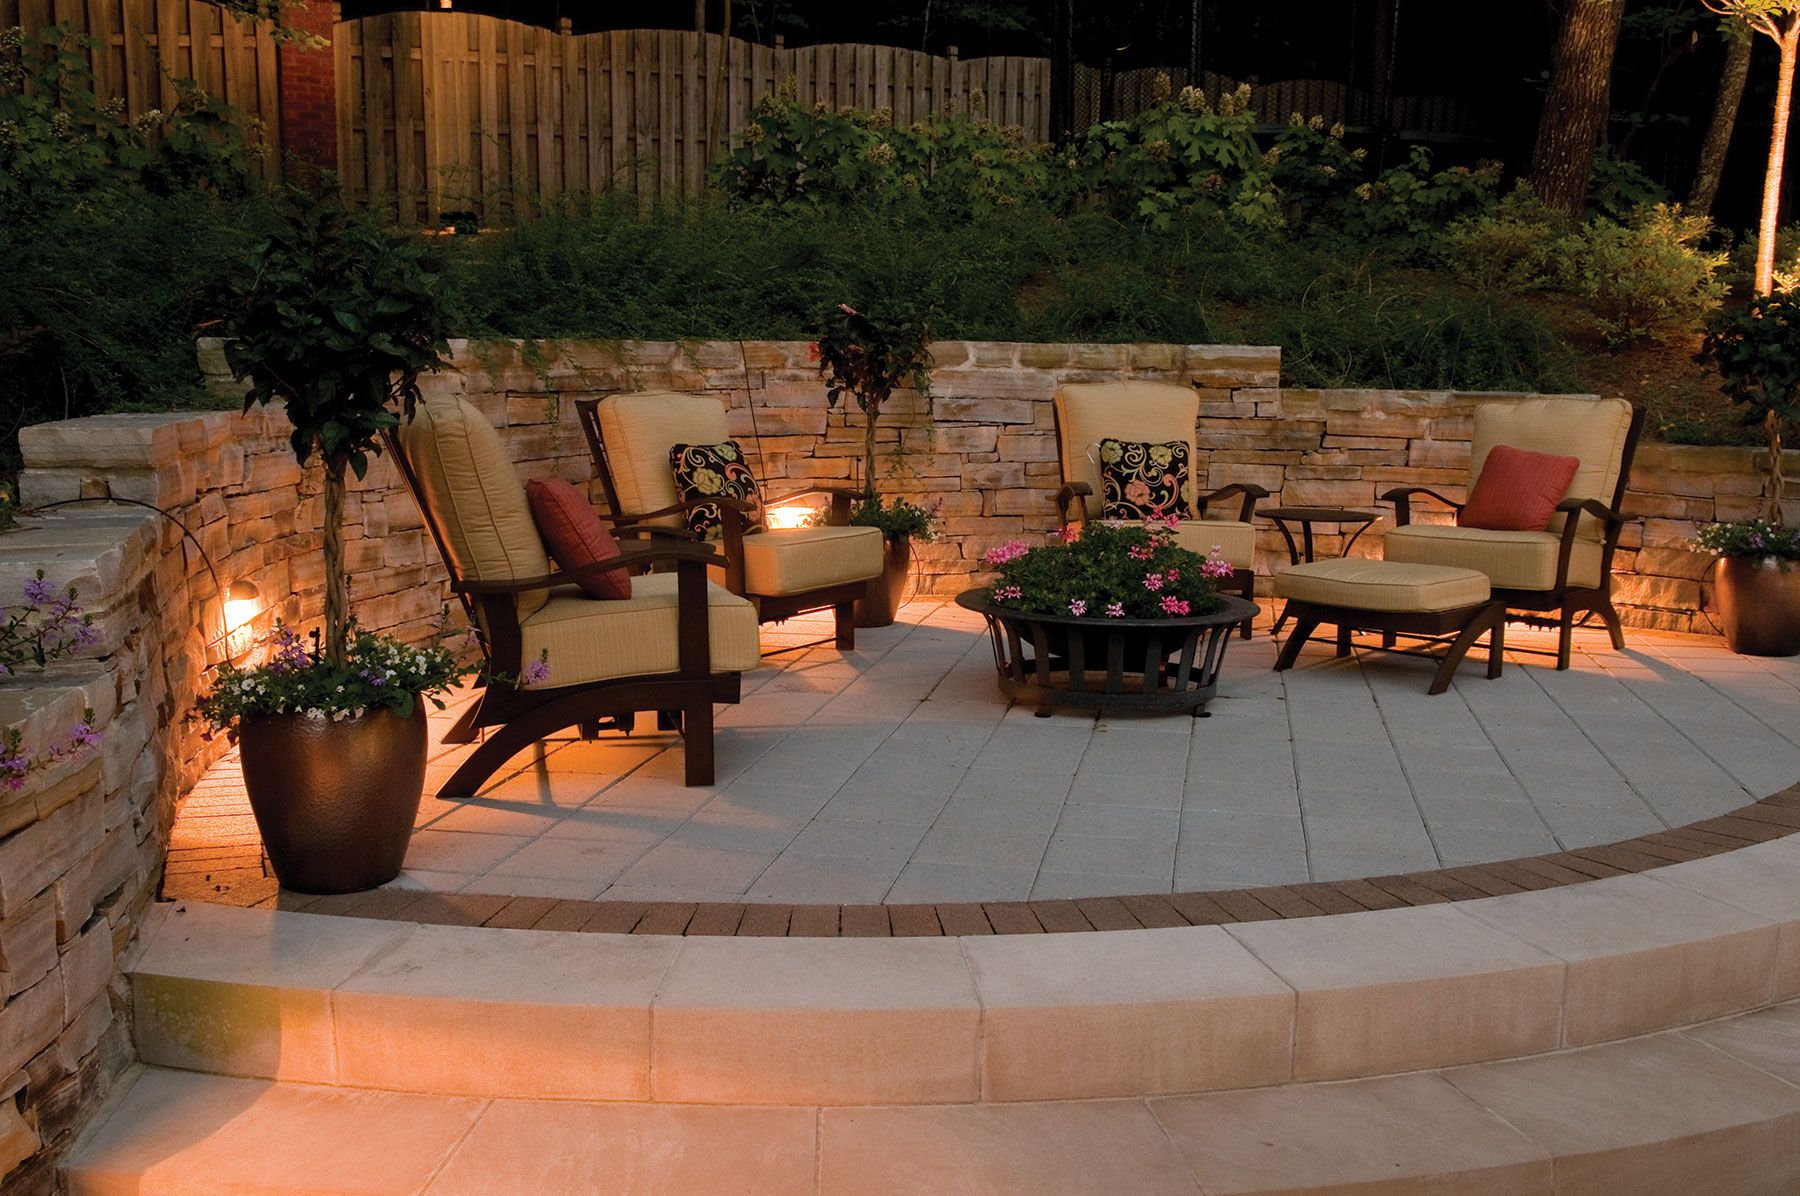 This Beautifully Illuminated Outdoor Living Room Is Bathed In Rich Golden Glows Of Energy Efficient Low Outdoor Patio Lights Backyard Patio Stone Patio Designs